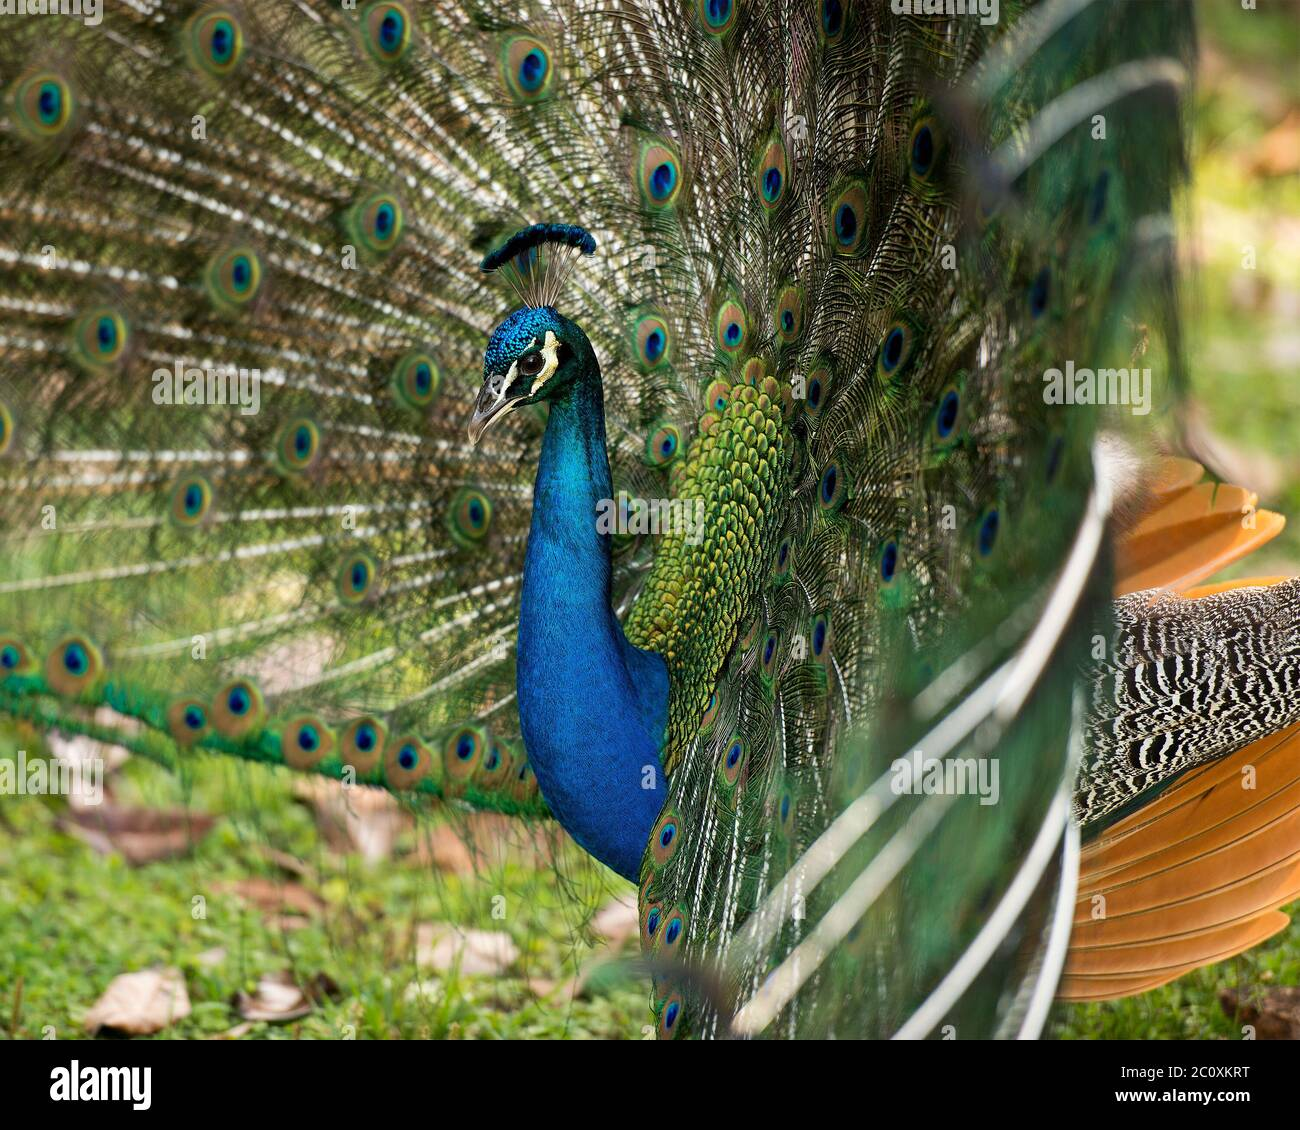 Peacock bird, the beautiful colorful bird. Peacock bird displaying fold open elaborate fan with train shimmering feathers with blue-green plumage with Stock Photo